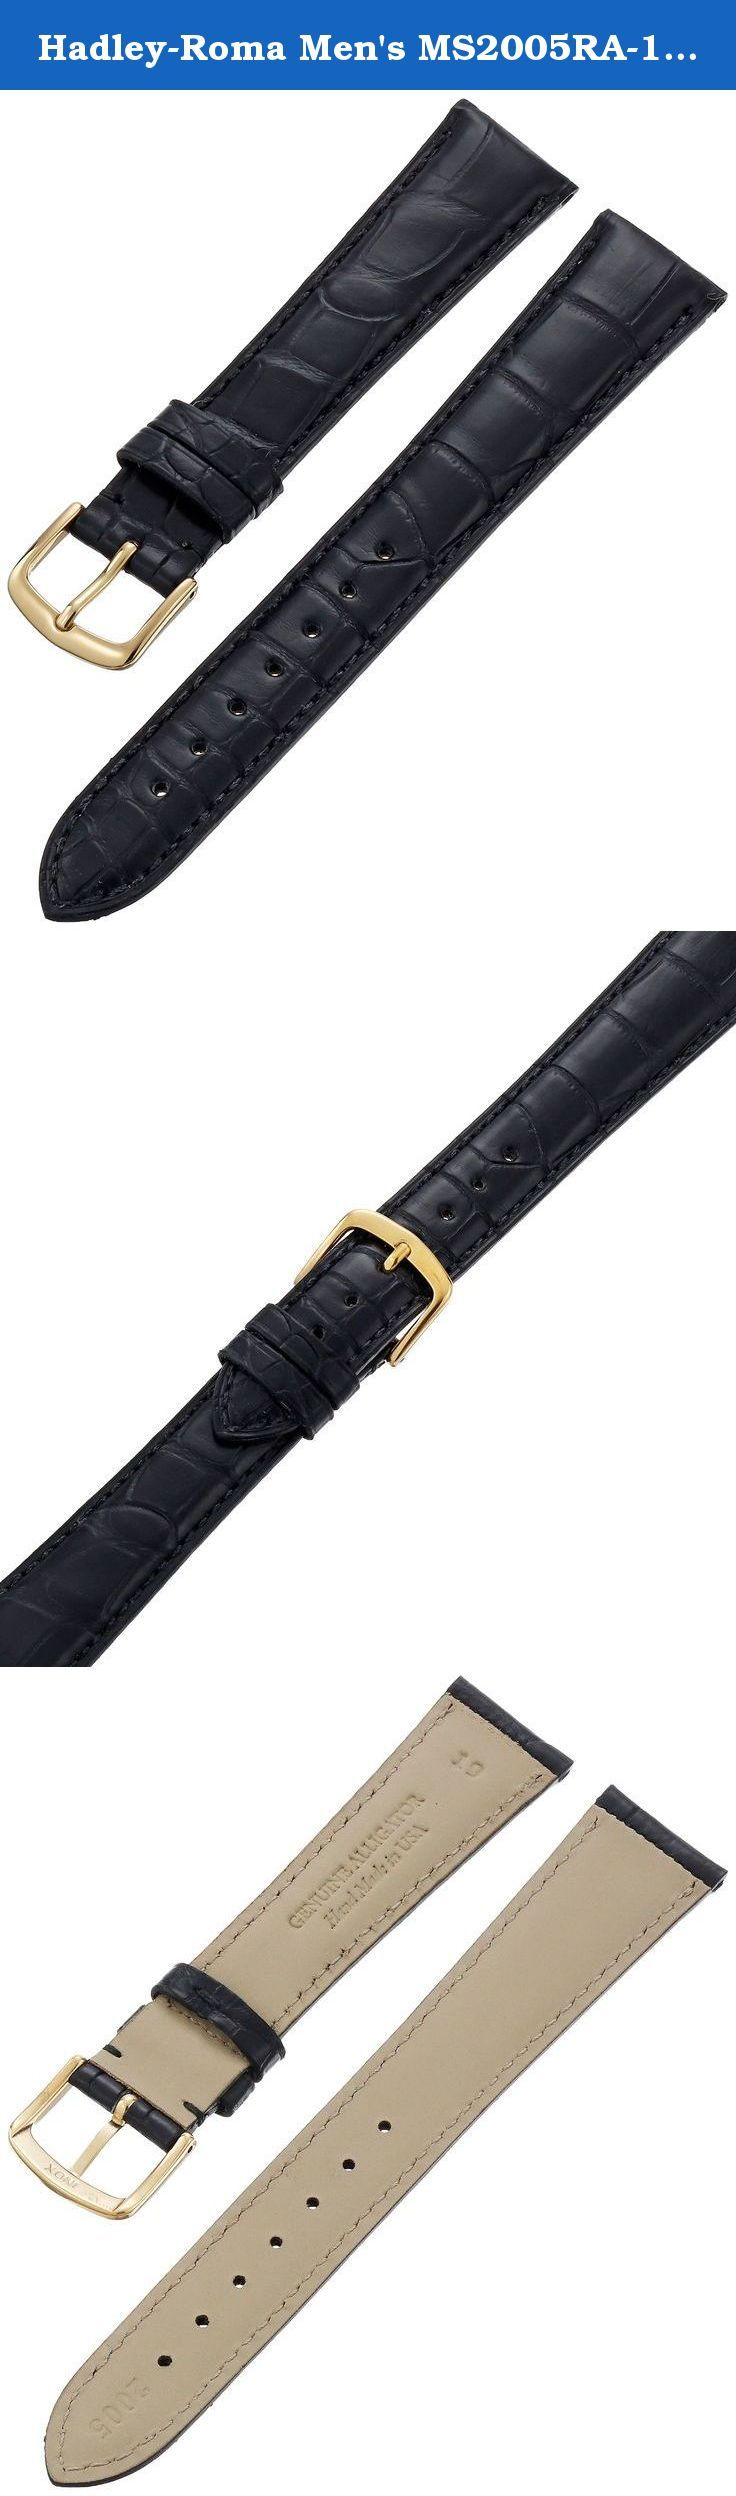 Hadley-Roma Men's MS2005RA-190 19-mm Black Genuine Alligator Leather Watch Strap. Genuine Louisiana Alligator Belly Cuts; semi-matte finish. Hypo-allergenic and water-resistant leather lining. Premium Square Grain Cuts, hypo-allergenic 316L gold plated stainless steel buckle. Band width: 19 mm (width of band at the case lugs). Handcrafted in the U.S.A.